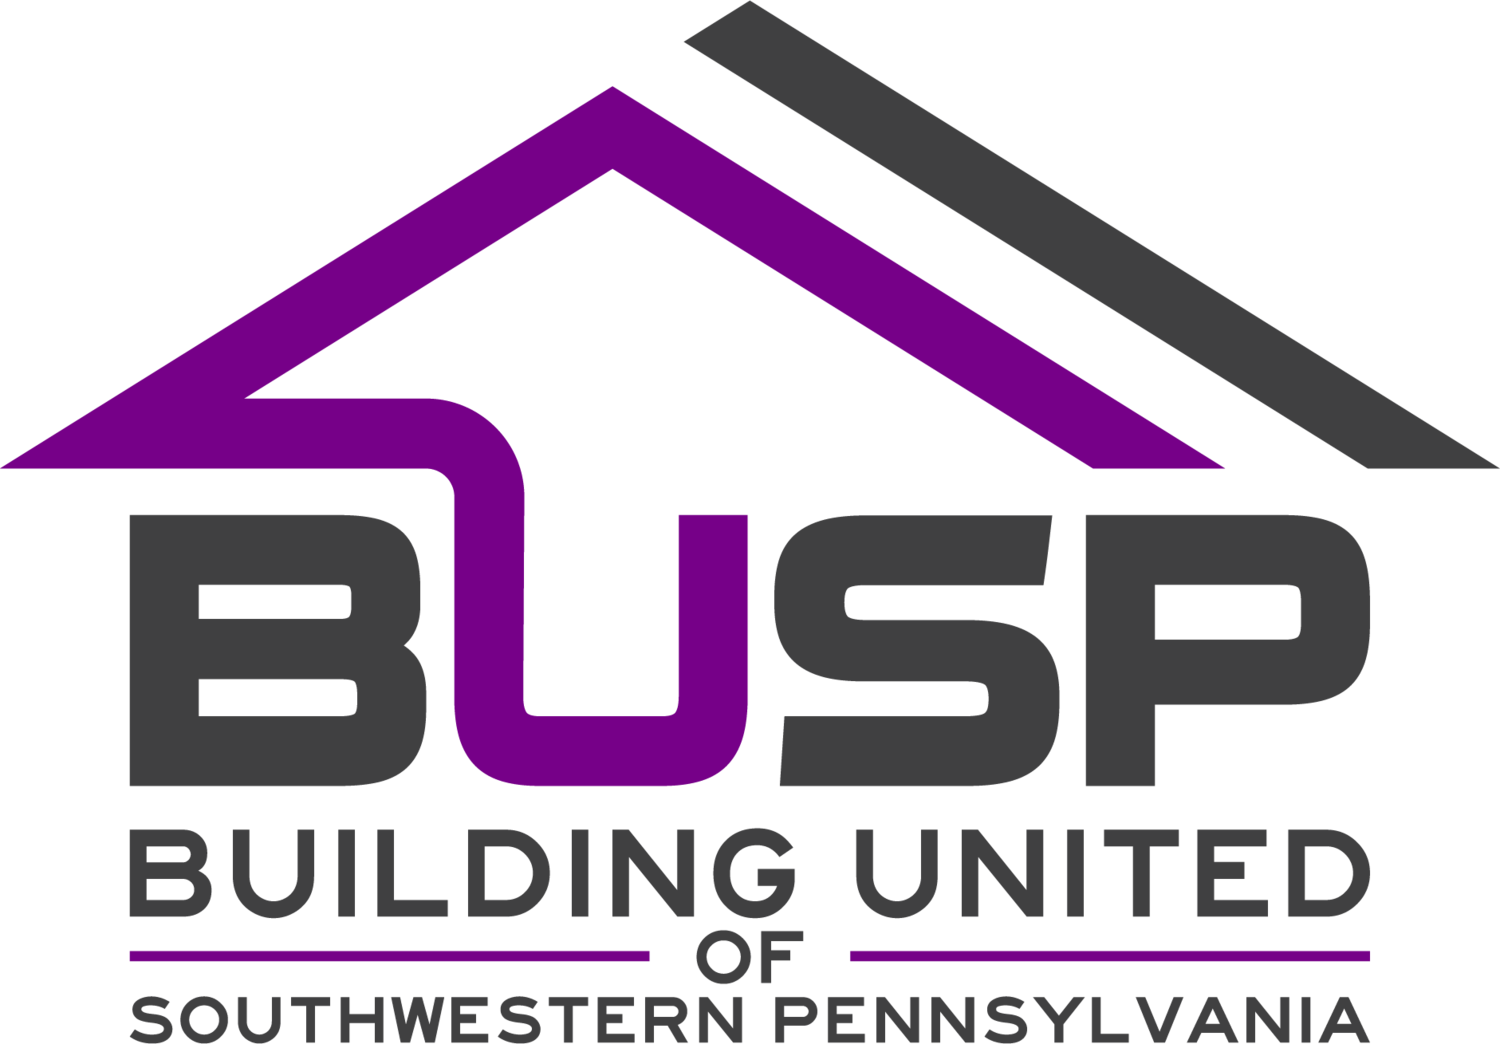 Building United of Southwestern Pennsylvania